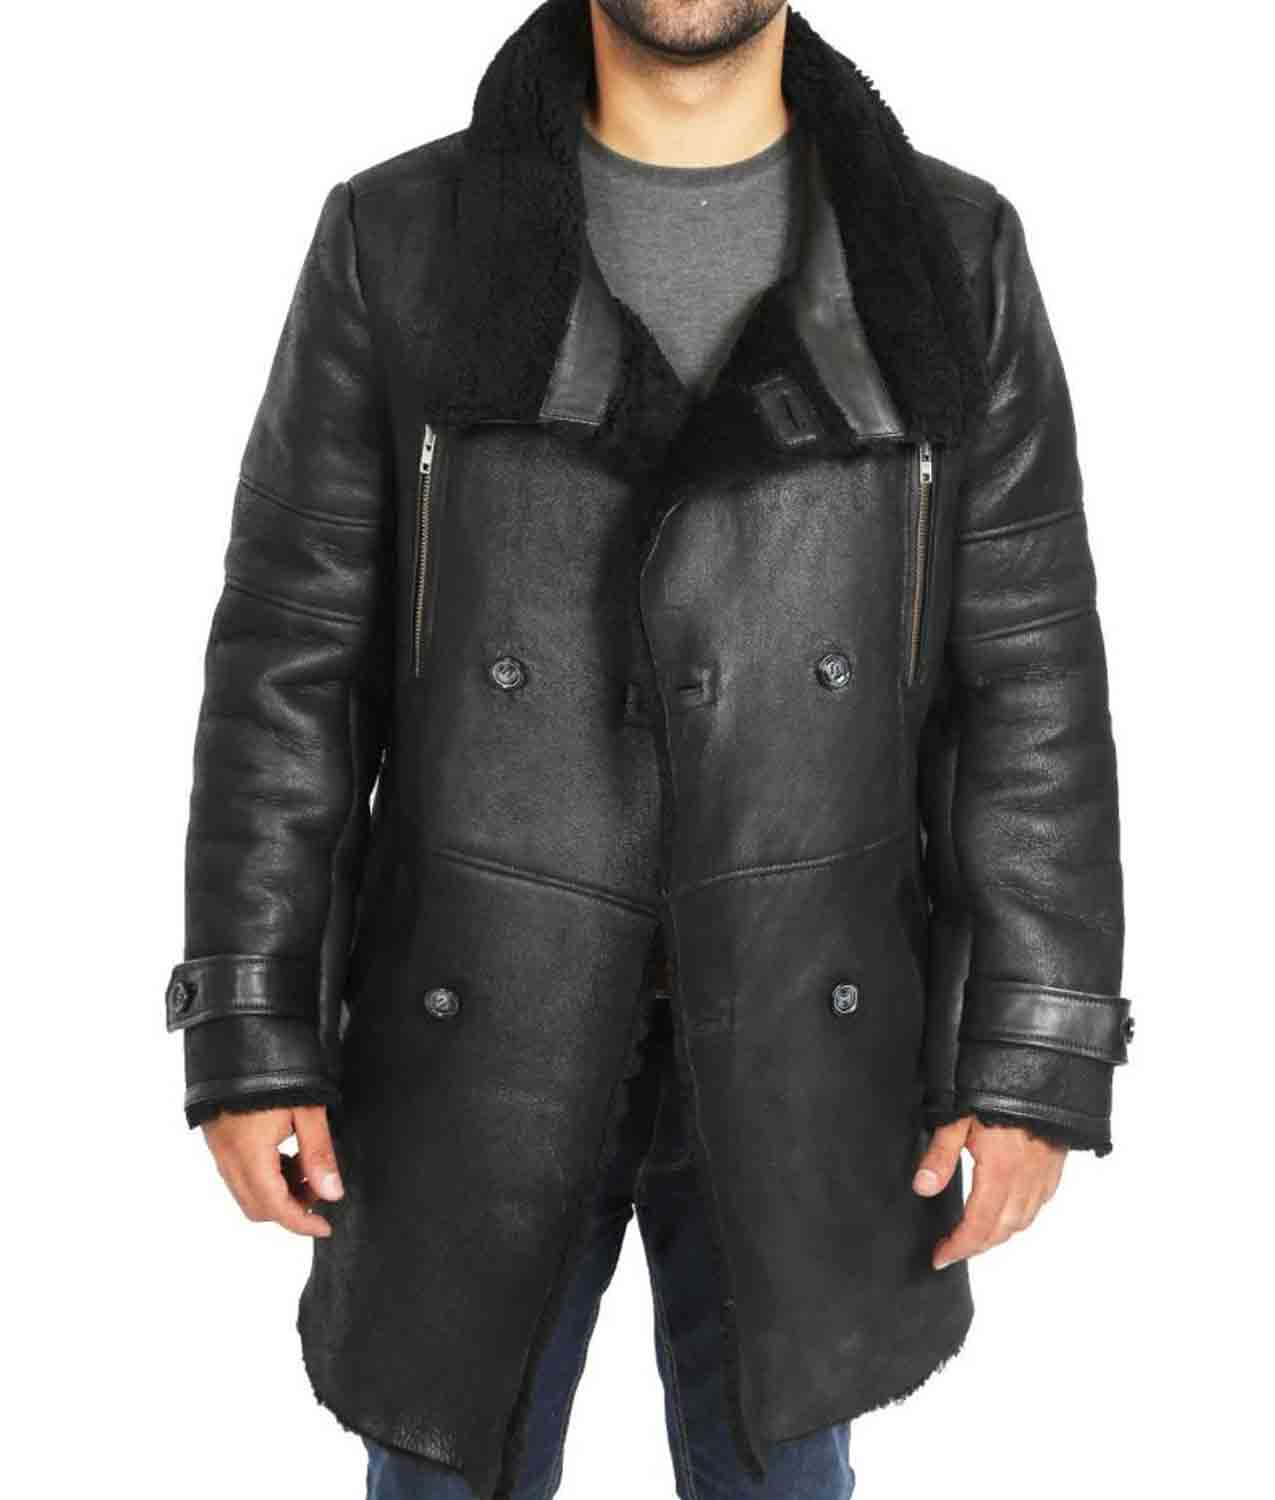 6231b99a1 Double Breasted Black Leather Sheepskin Coat Mens - Jackets Creator